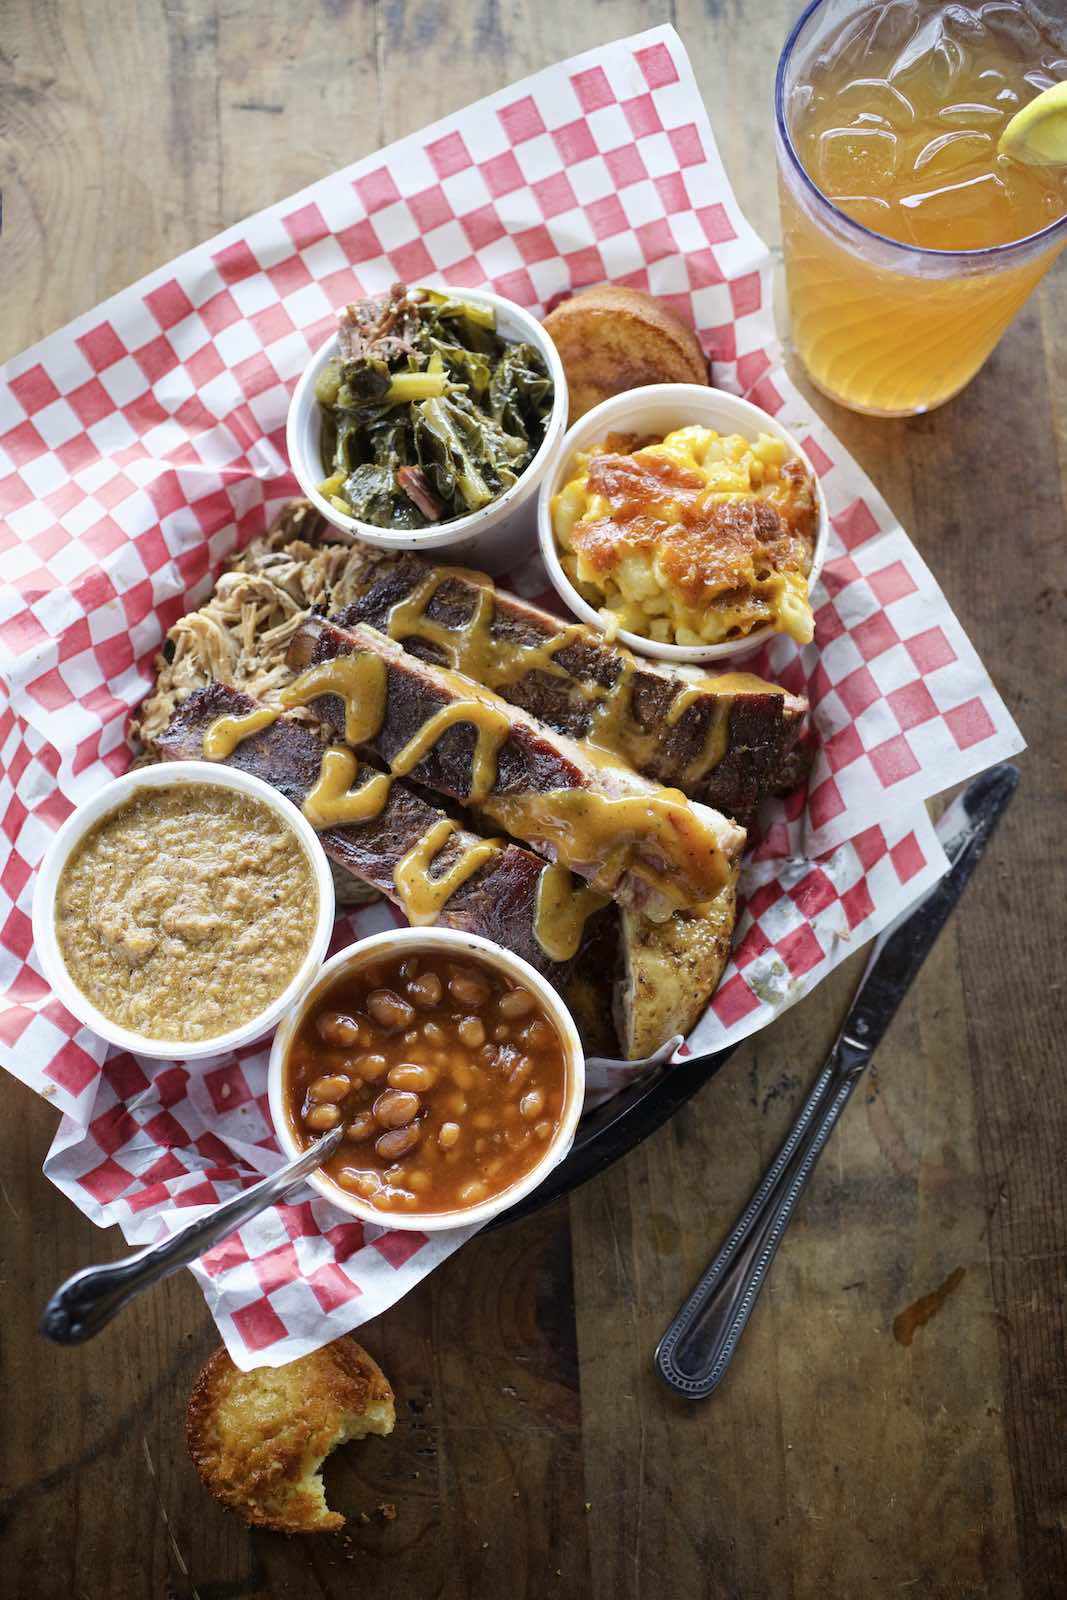 Barbecue plate with beans and collards on checkered parchment.